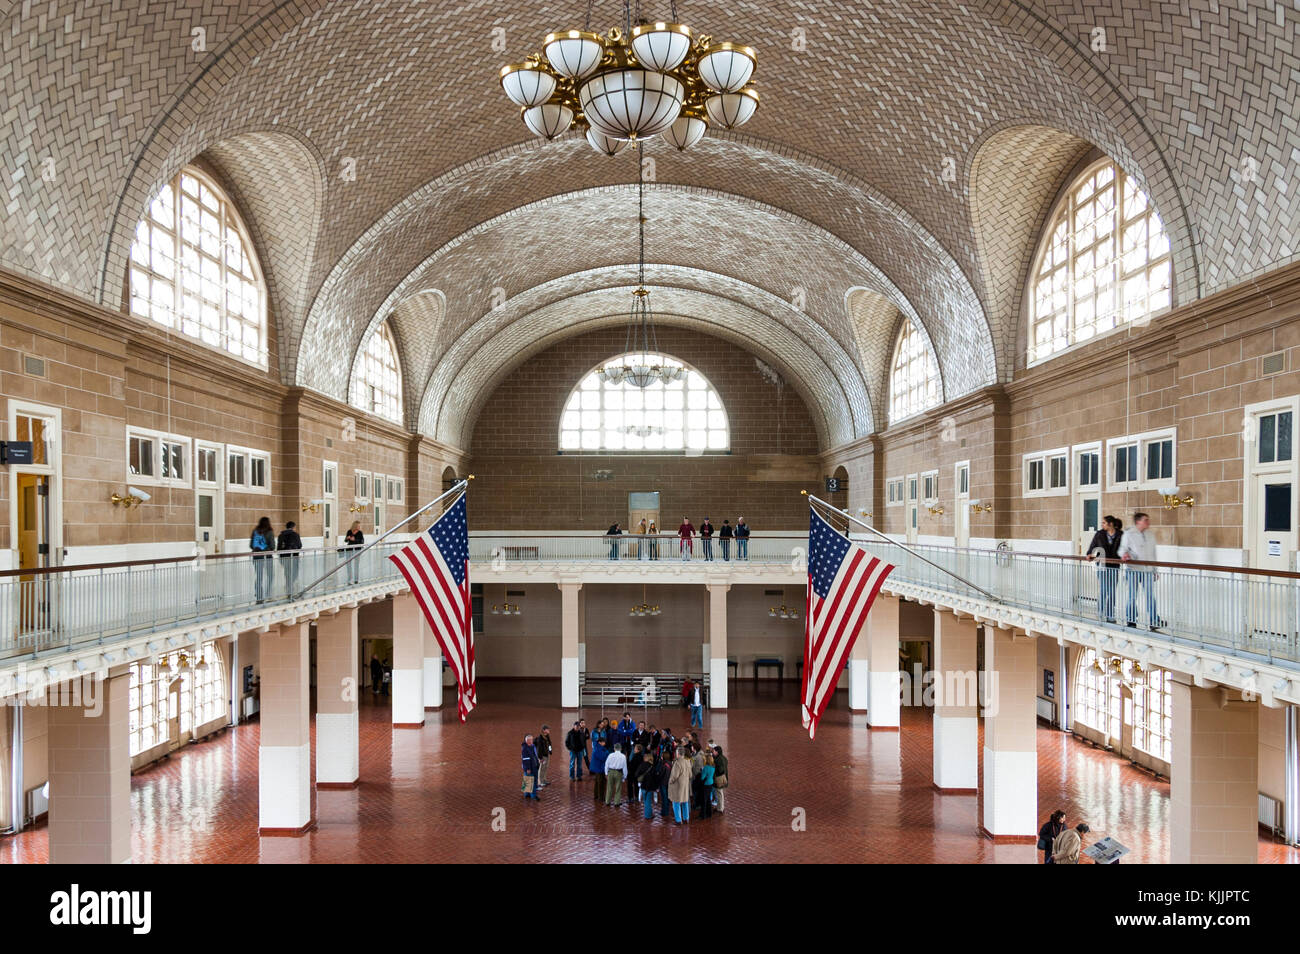 Ellis Island Main Hall With Its Barrel Vaulted Ceiling